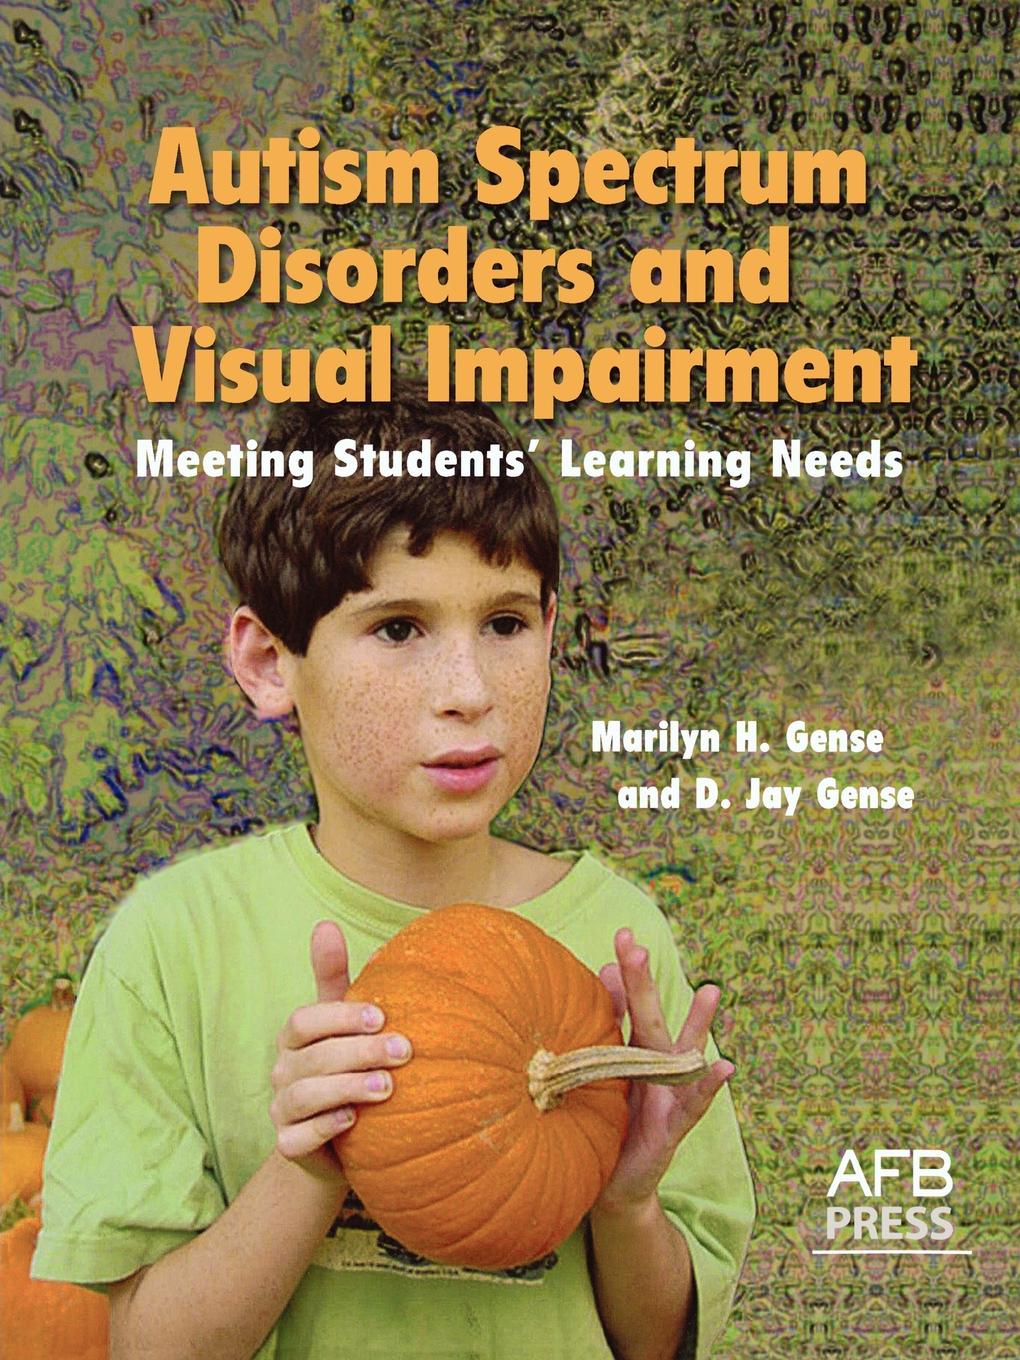 Marilyn H. Gense, D. Jay Gense Autism Spectrum Disorders and Visual Impairment. Meeting Students Learning Needs caren haines rn silently seizing common unrecognized and frequently missed seizures and their potentially damaging impact on individuals with autism spectrum disorders